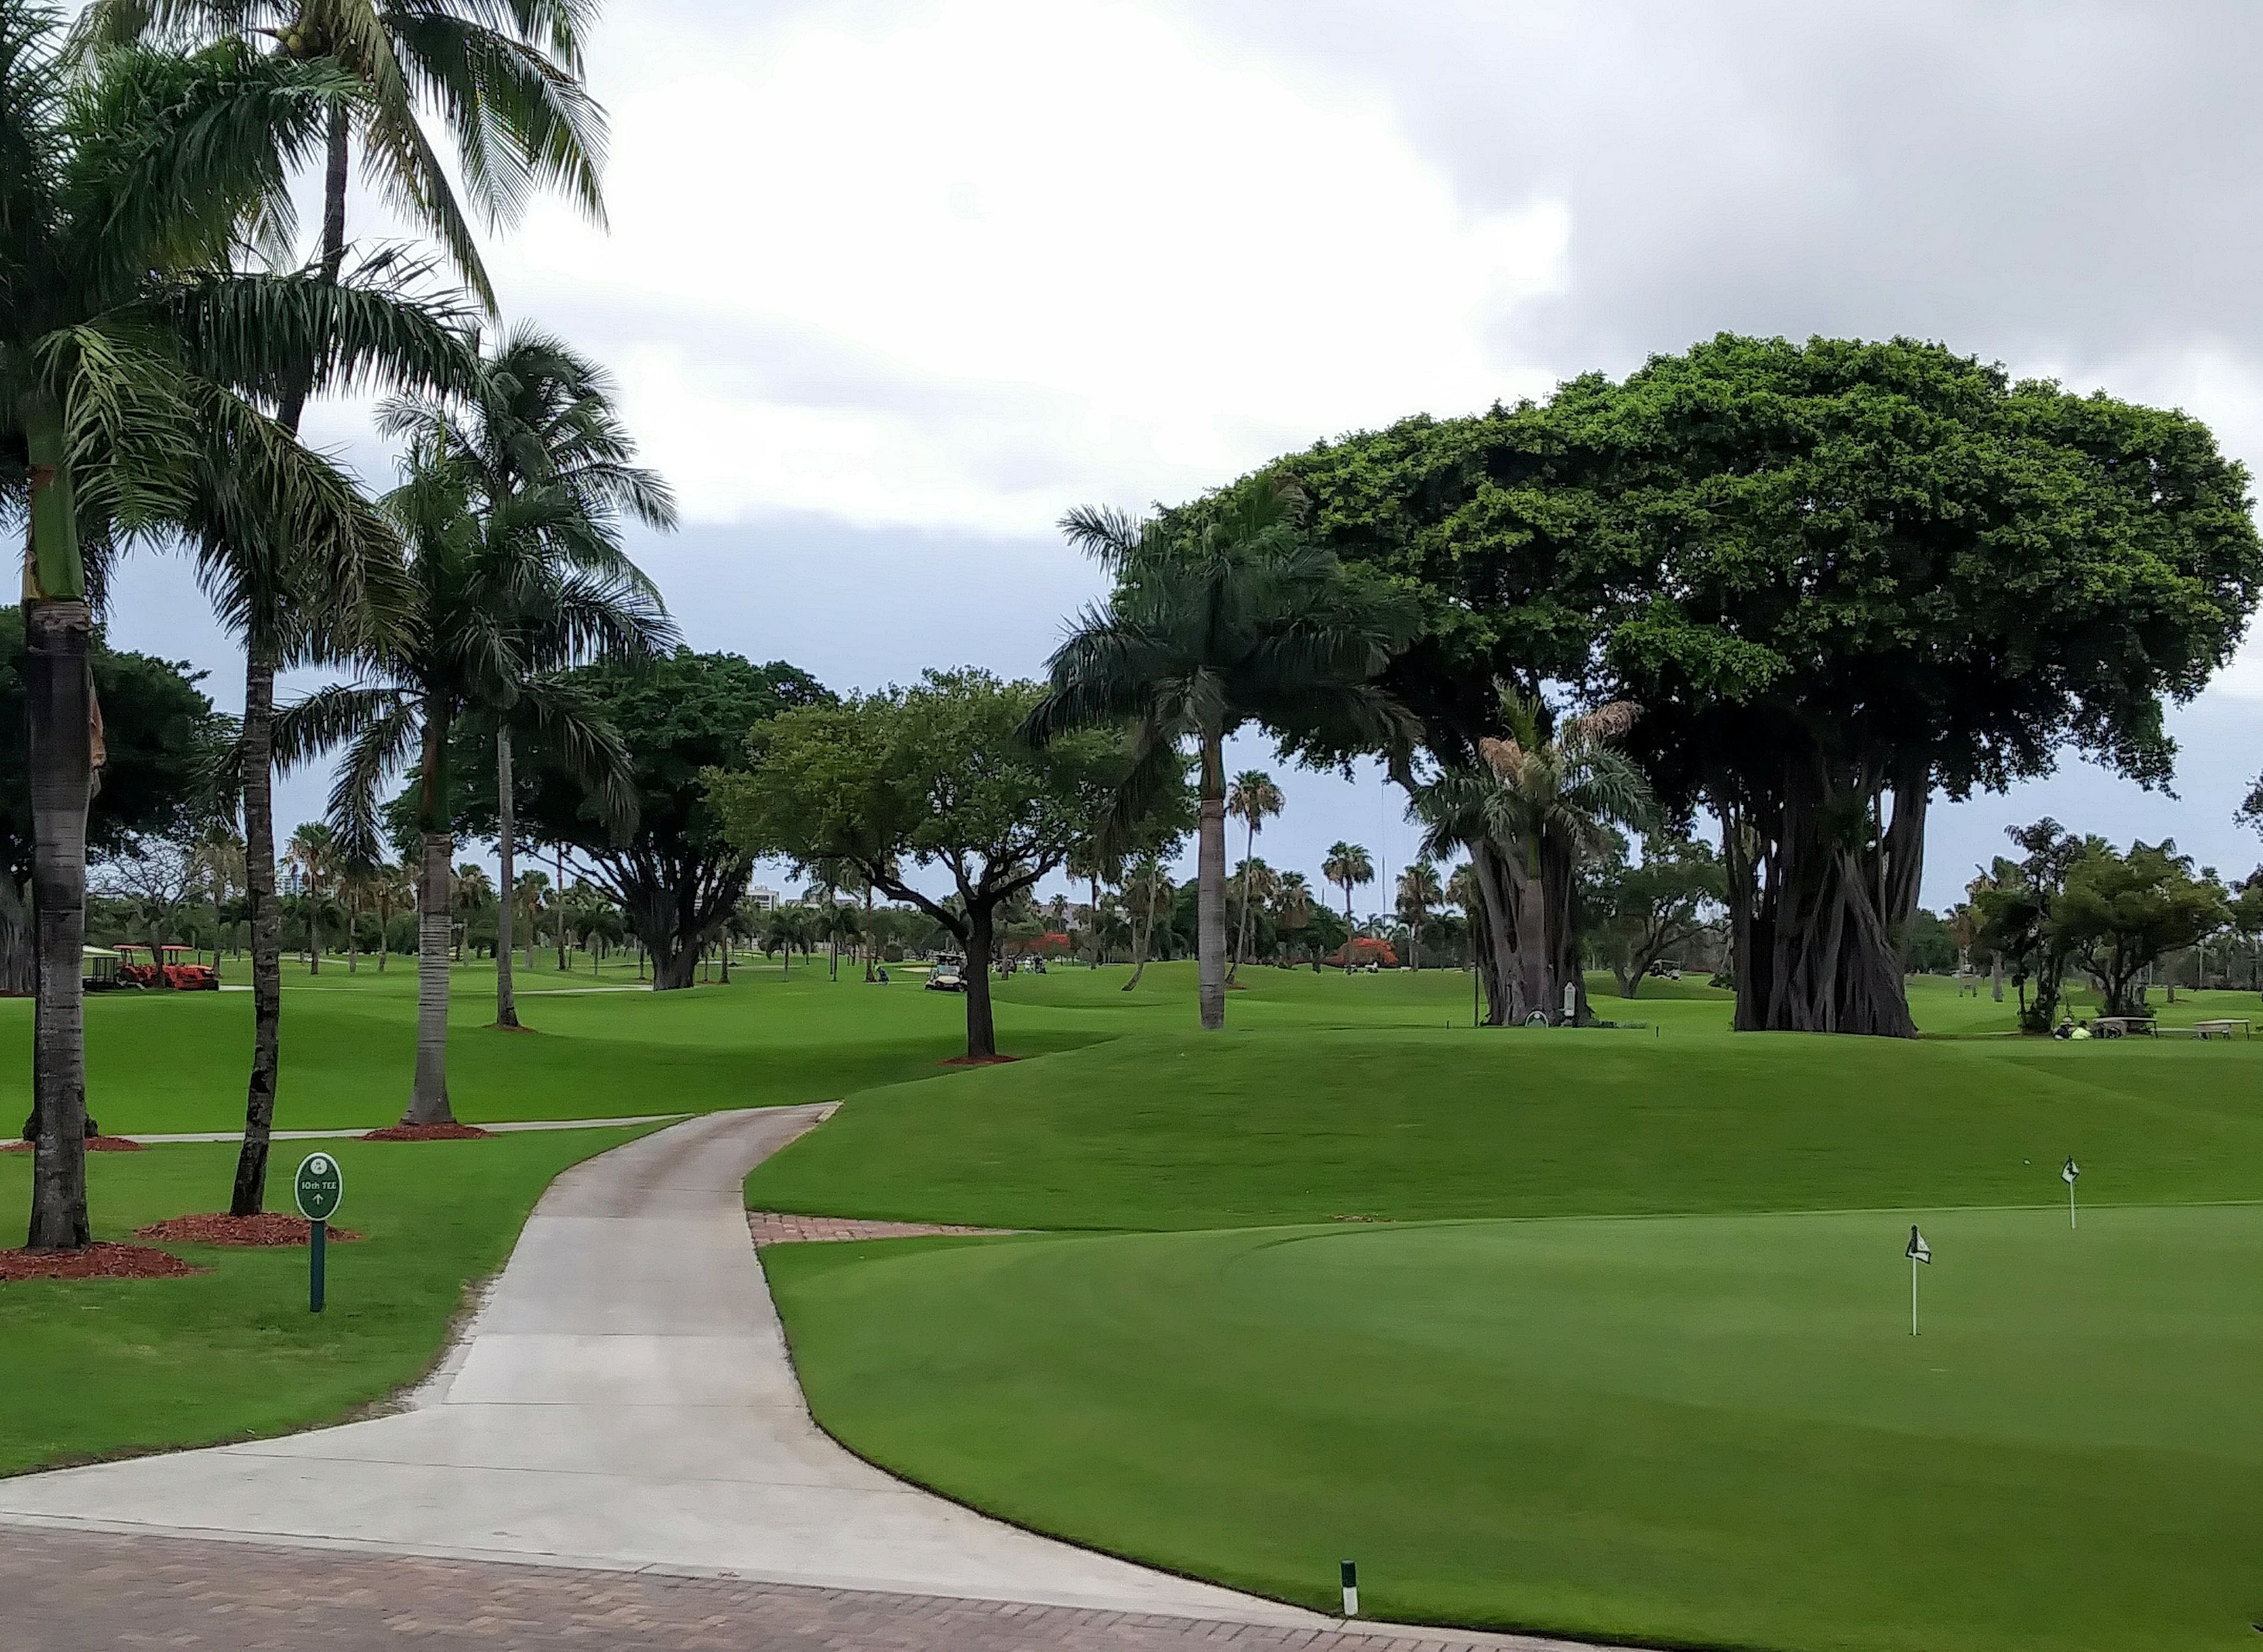 Miami - Mel Reese Public Golf Course on NW 37 Av. TigertailRealty ...